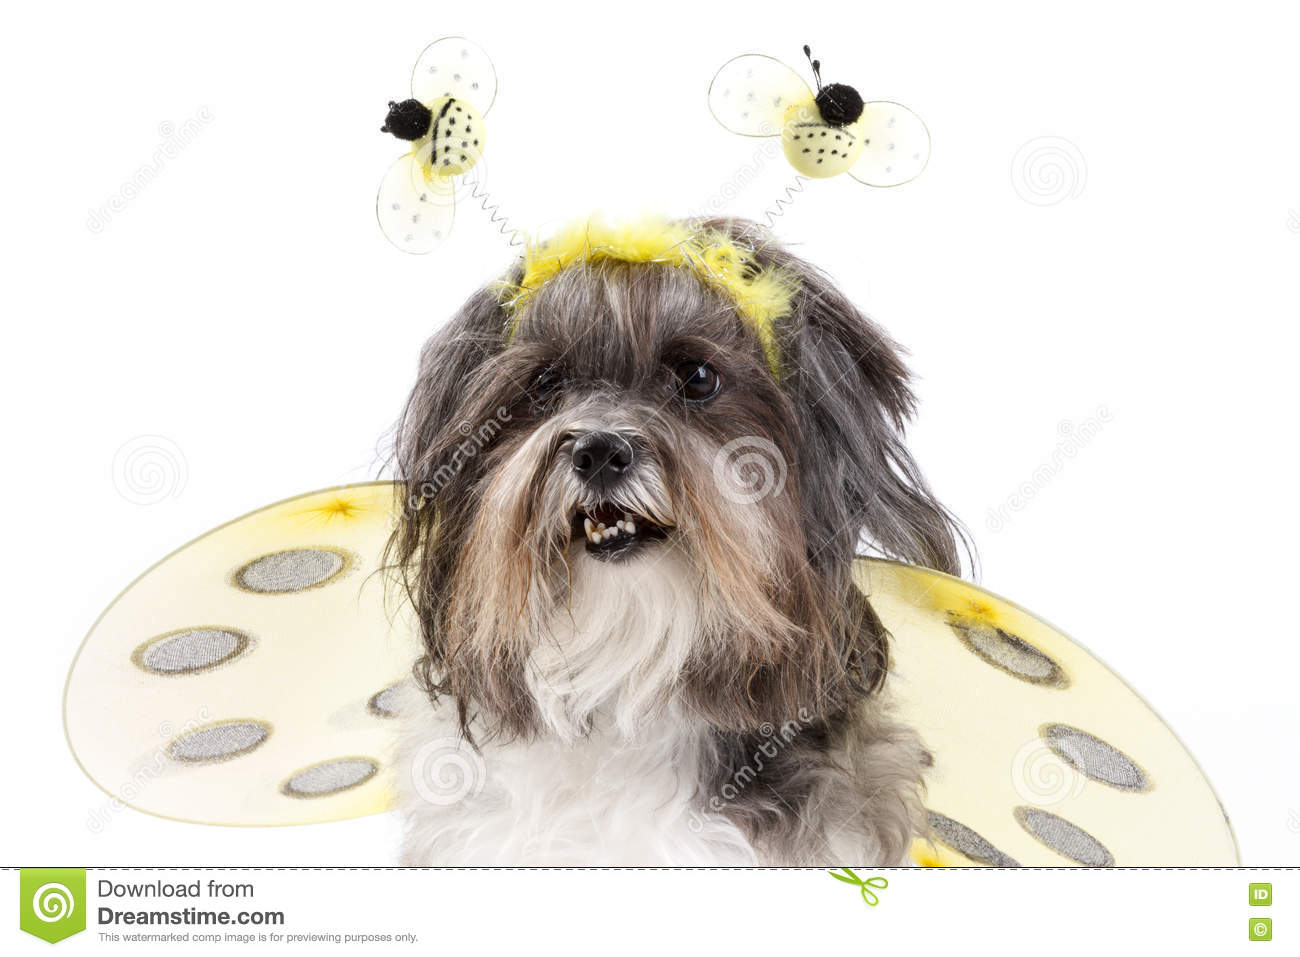 Cute Dog Dressed Up As A Bumble Bee Stock Image Image Of Looking